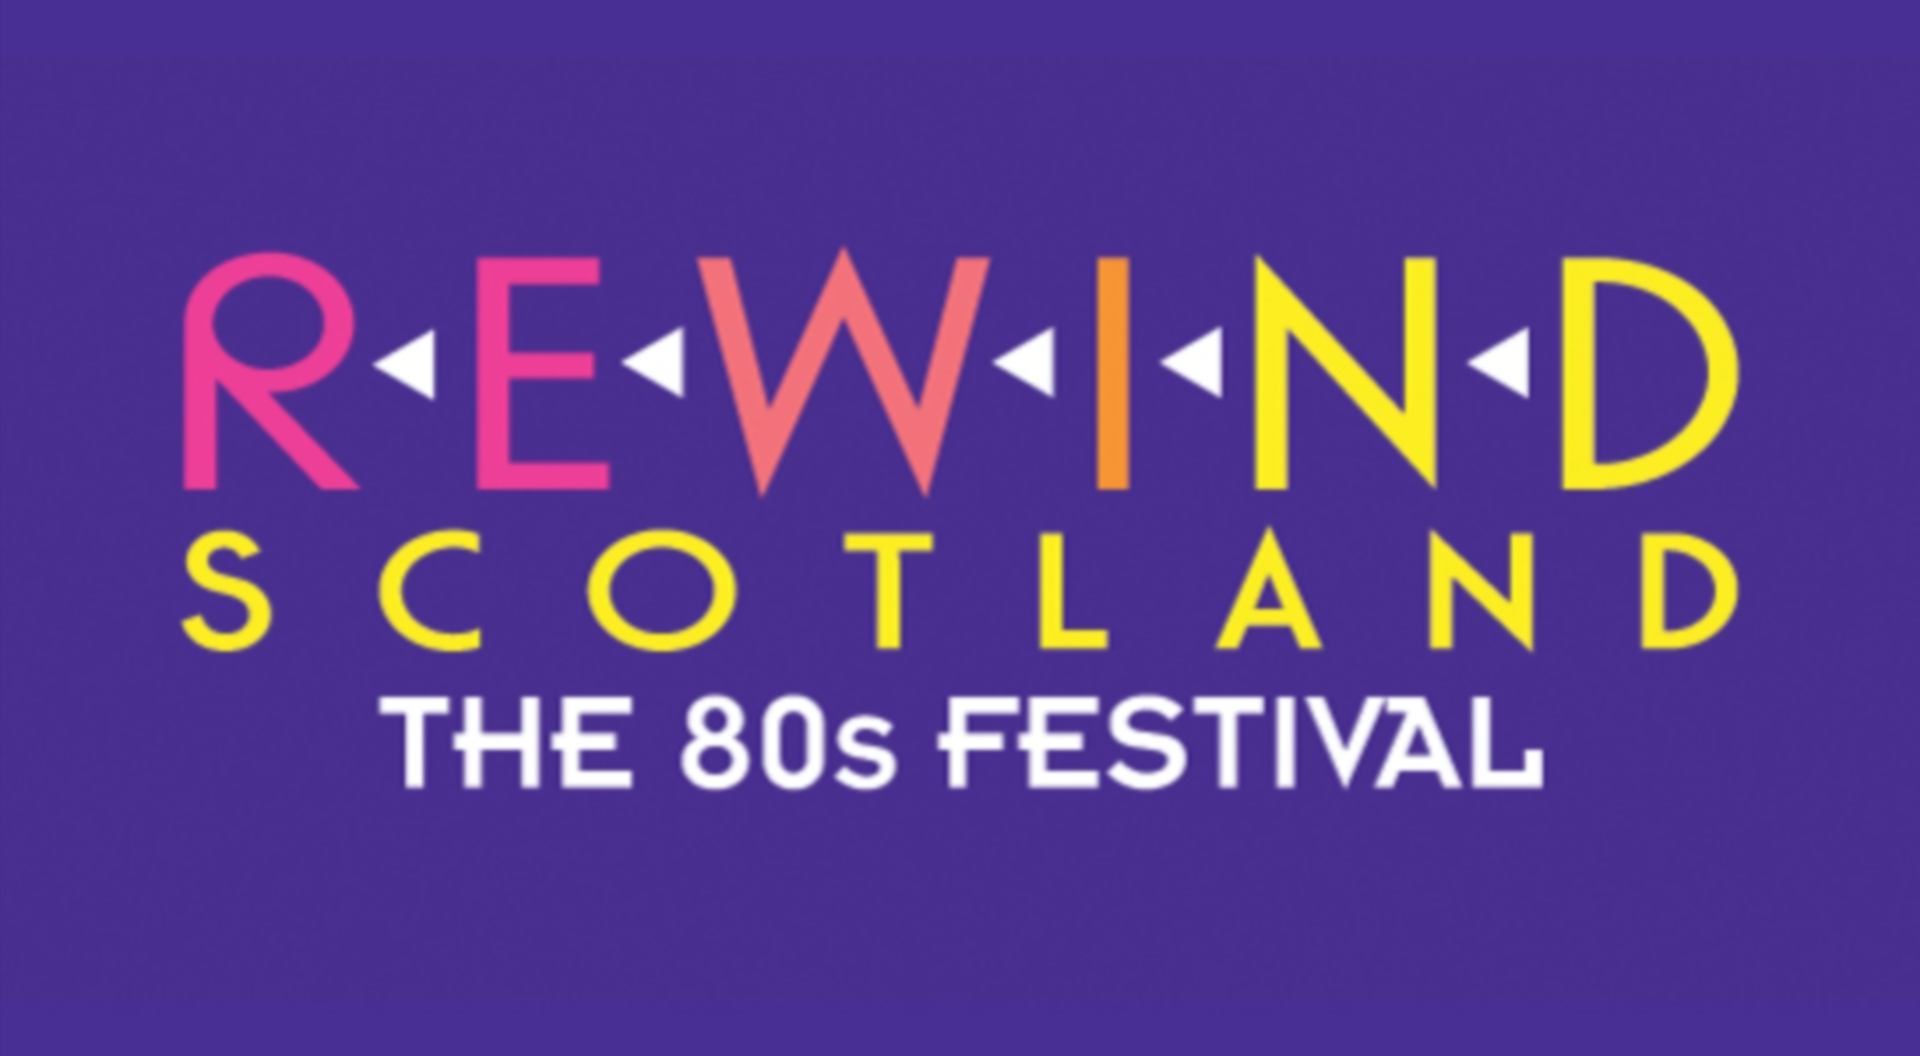 Rewind Scotland is back at Scone Palace in July.